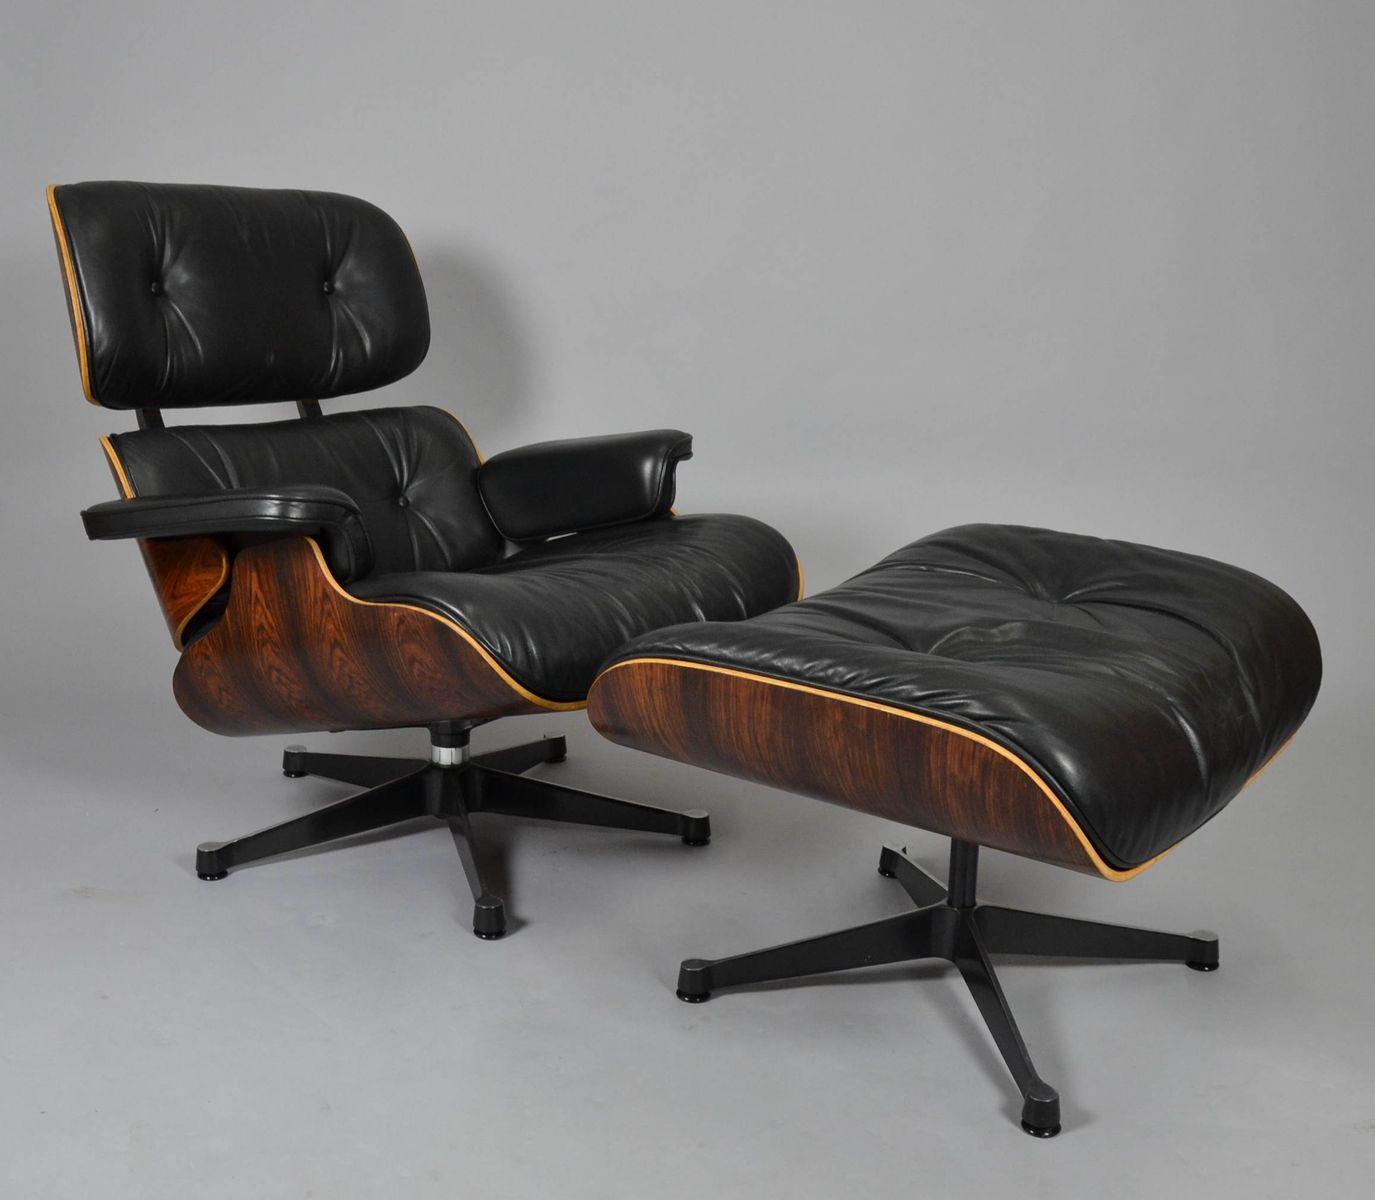 midcentury lounge chair ottoman by charles ray eames for - Mid Century Lounge Chair